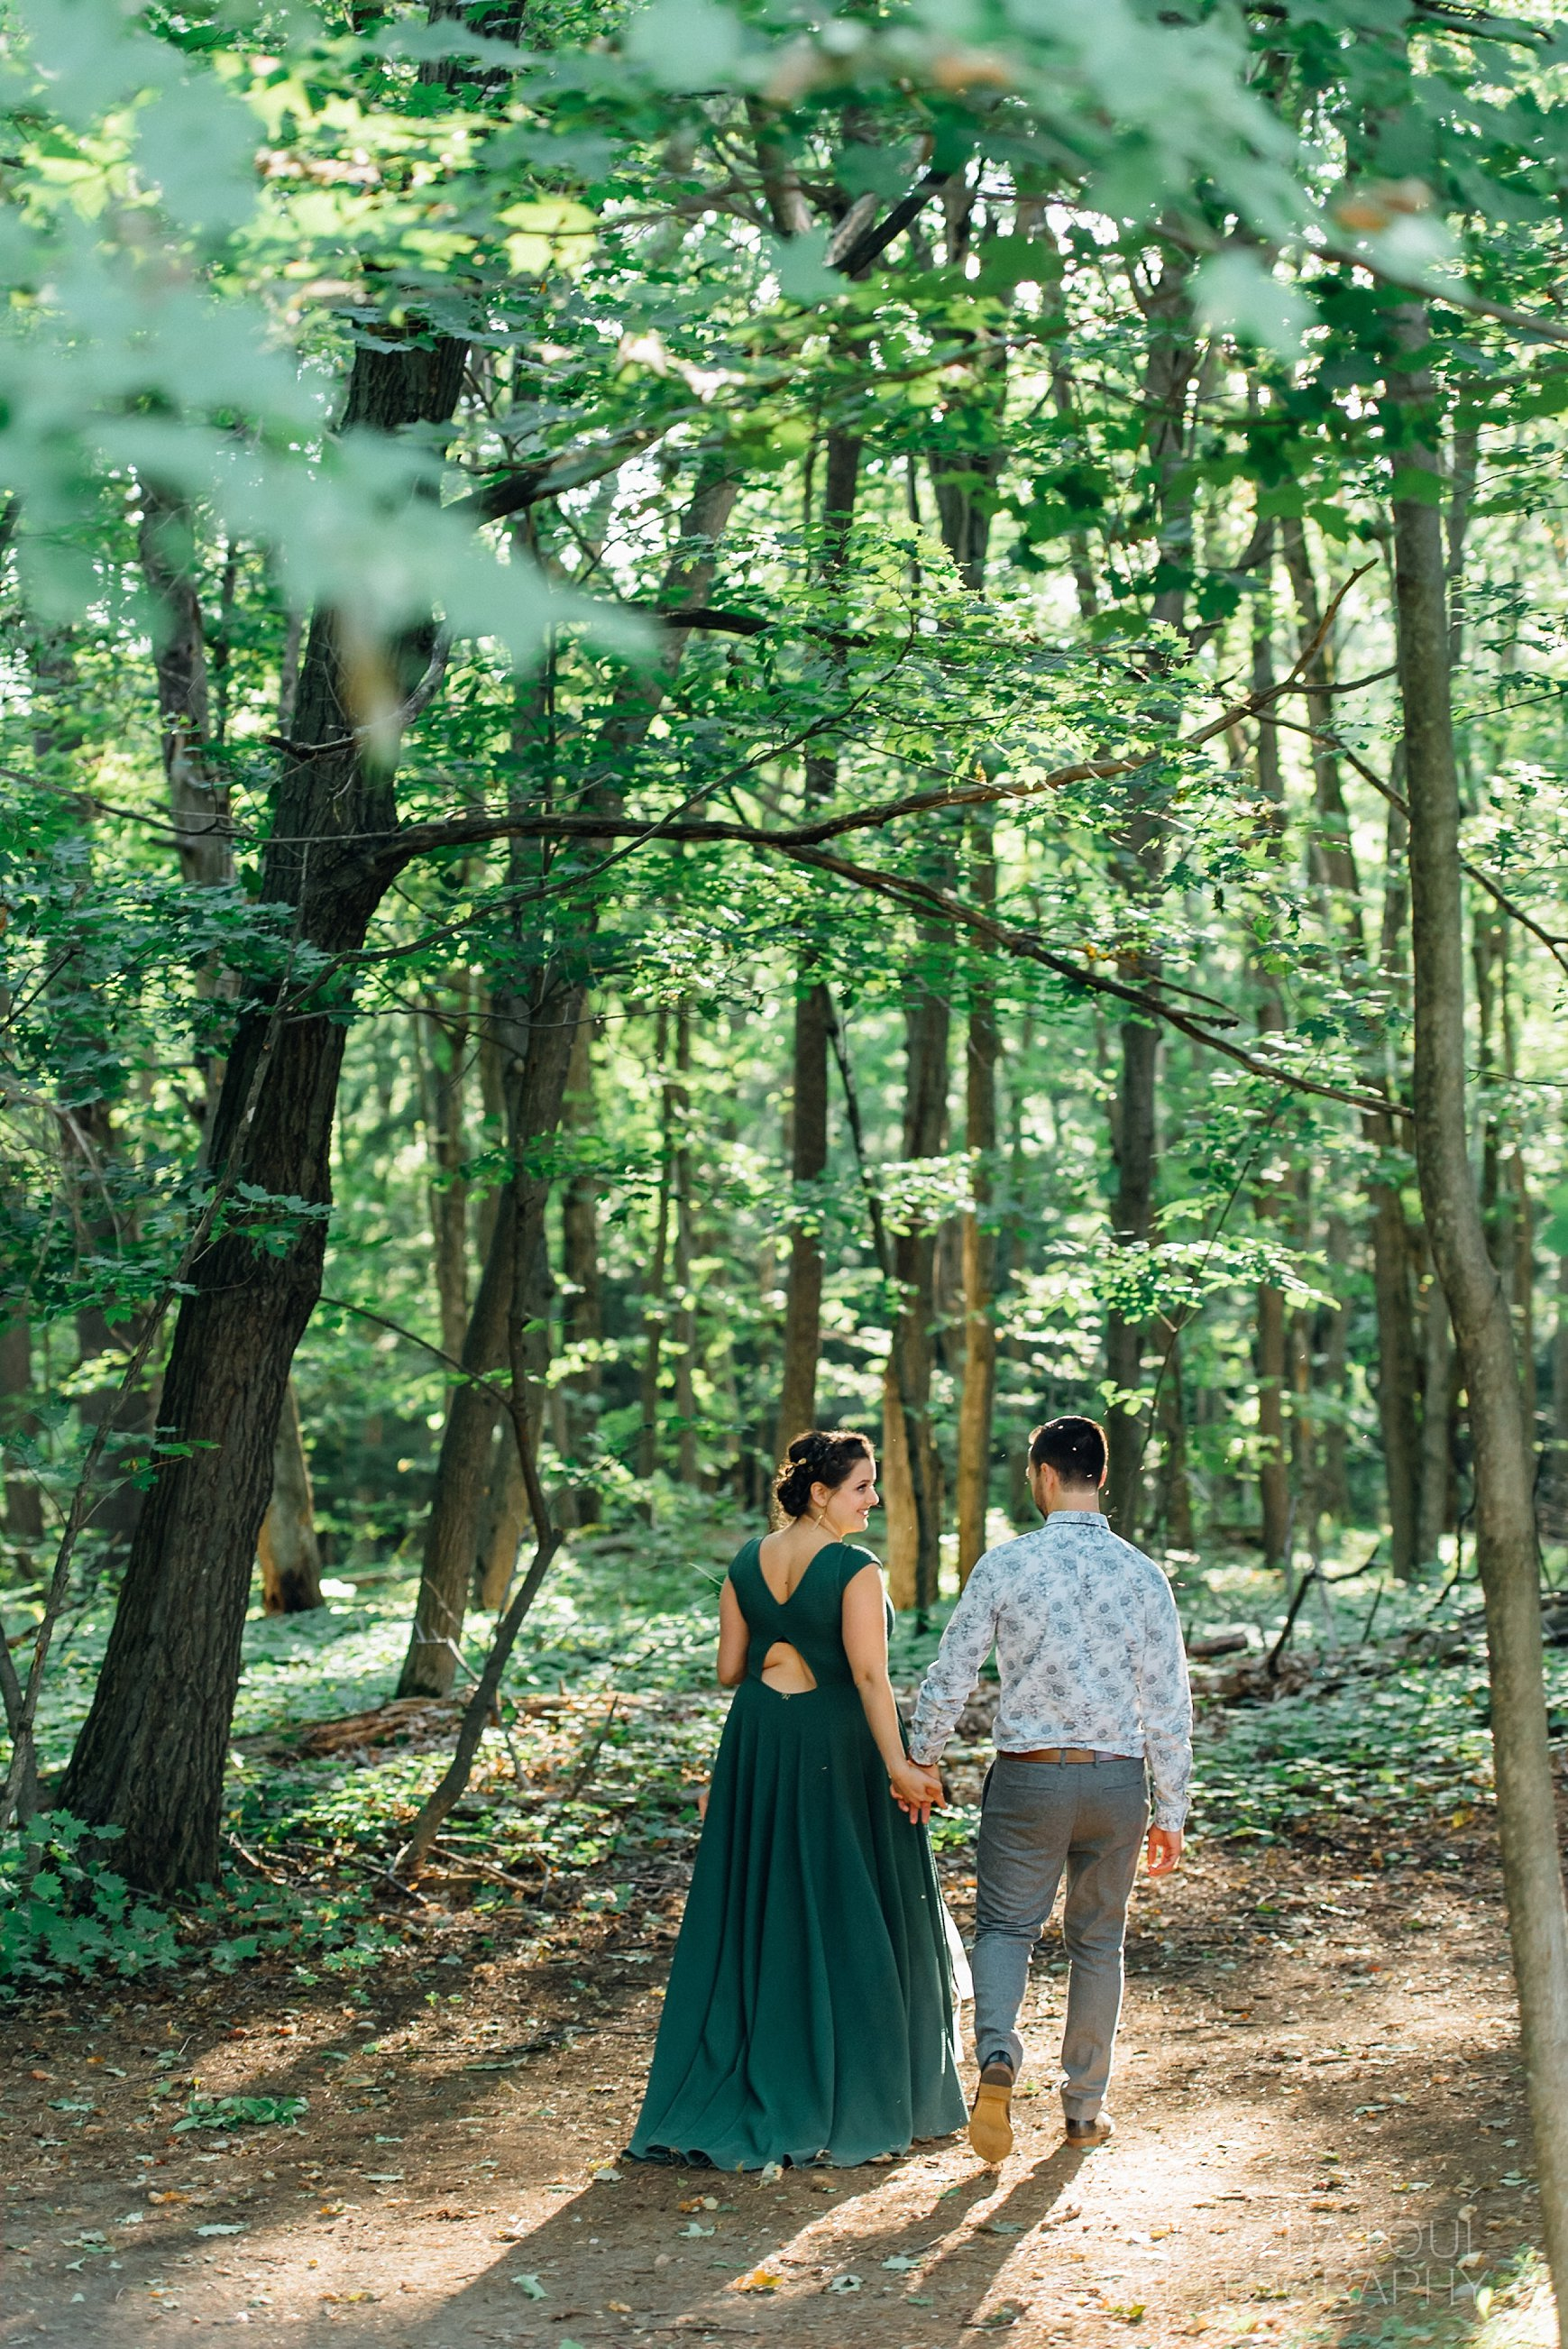 Ali and Batoul Photography - light, airy, indie documentary Ottawa wedding photographer_0063.jpg